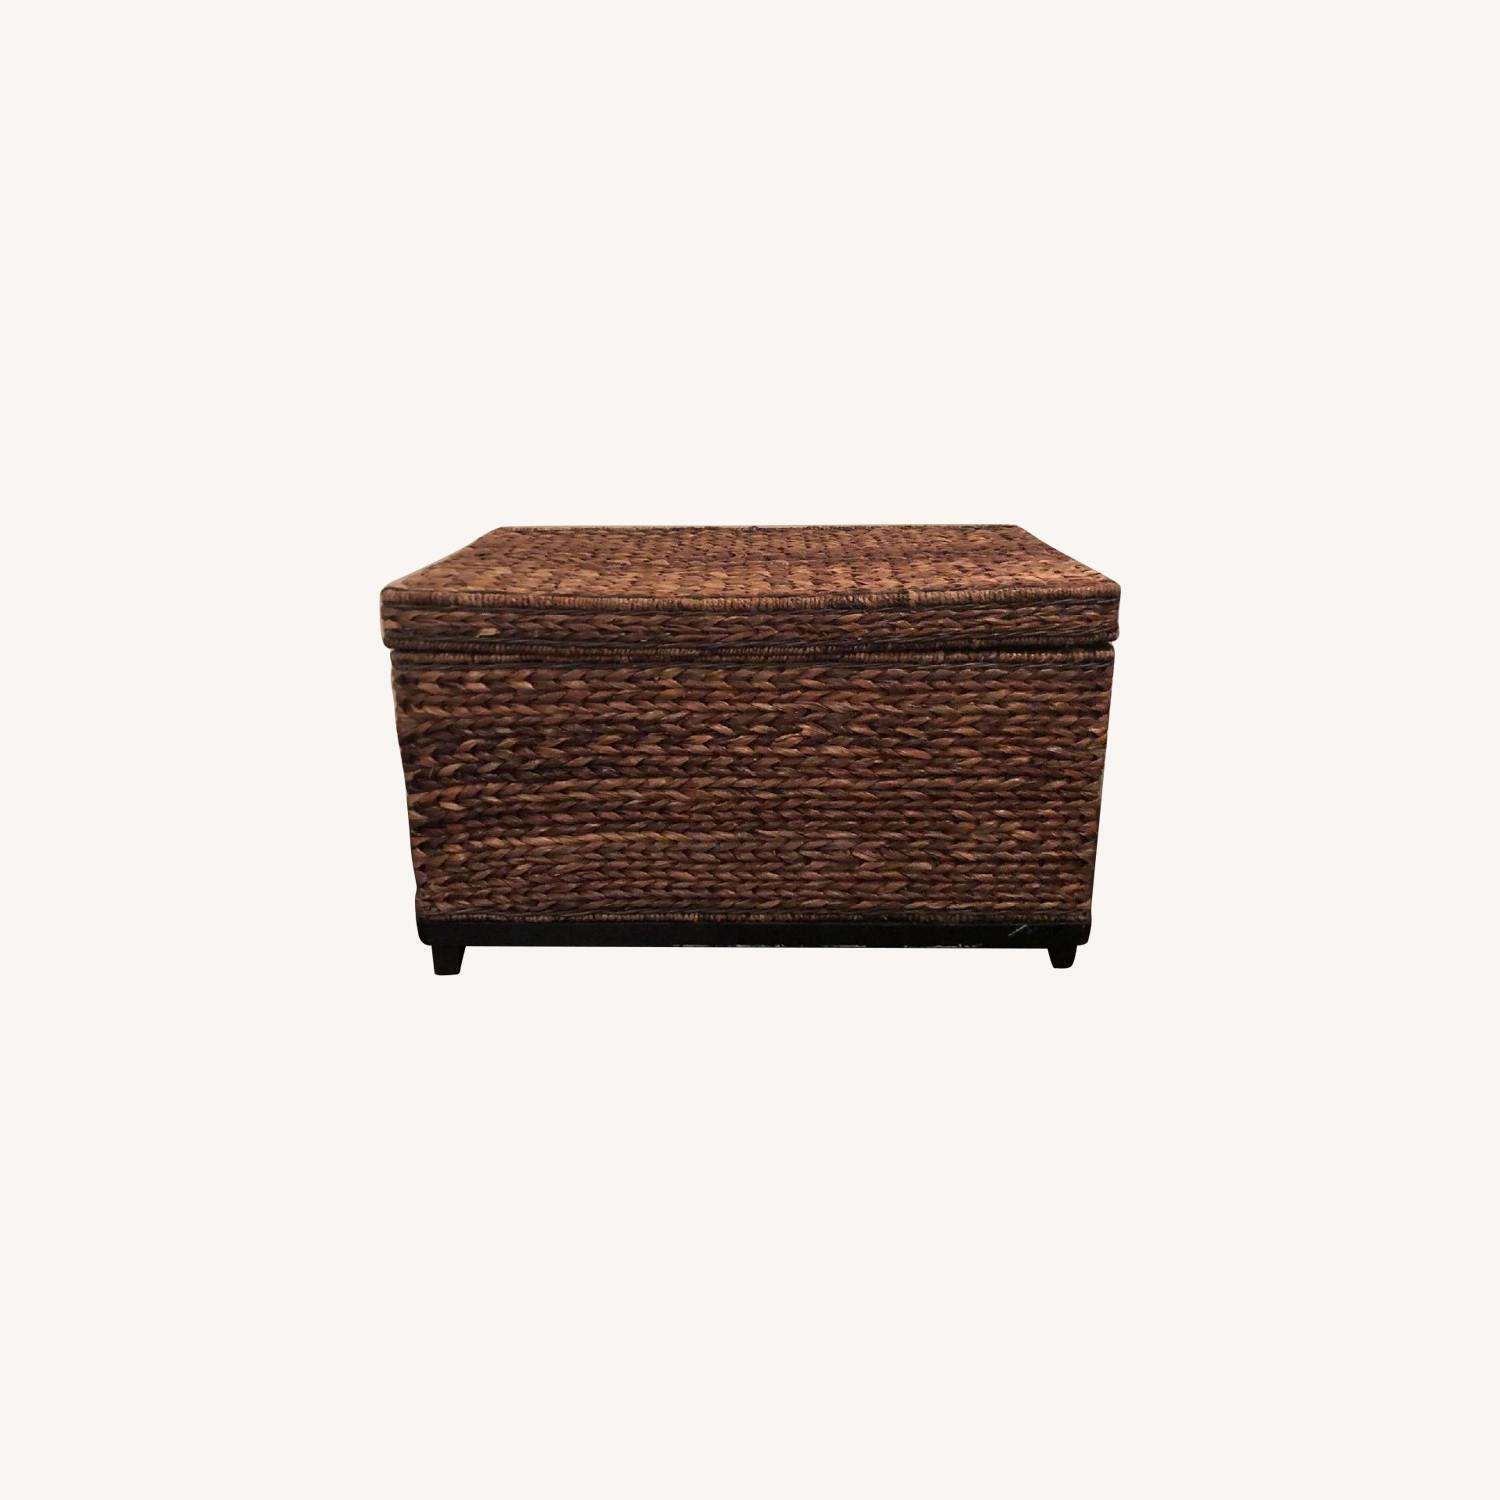 Target Rectangle Wicker Storage Ottoman Bench - image-0